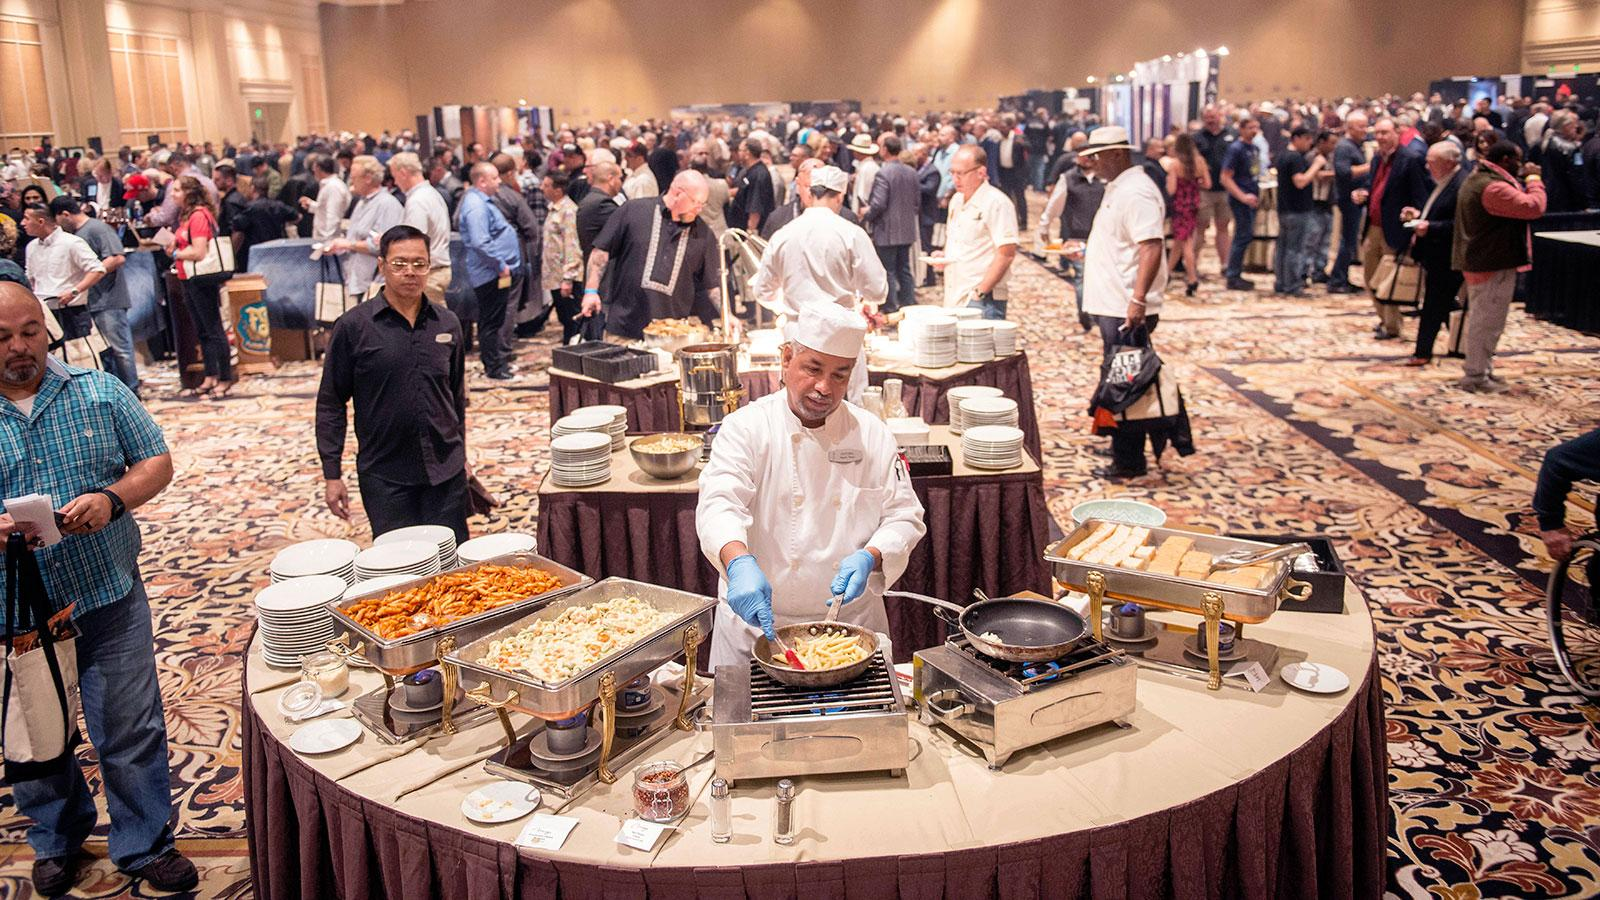 A chef at The Mirage cooks up fine food for cigar lovers to enjoy.